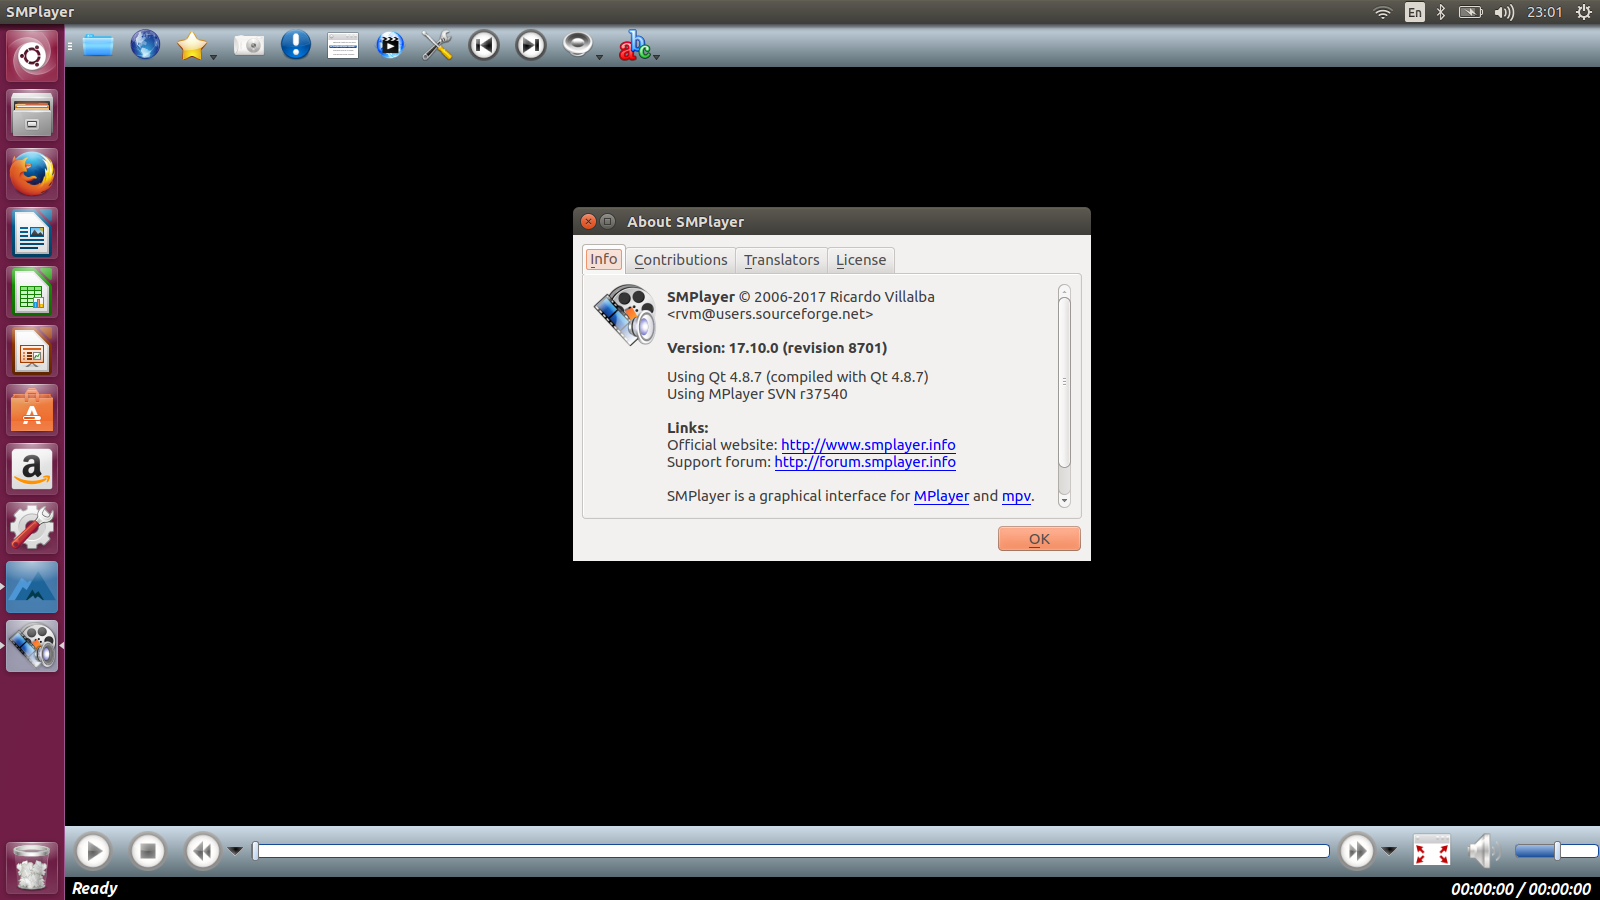 How to install program on Ubuntu: How to install SMPlayer